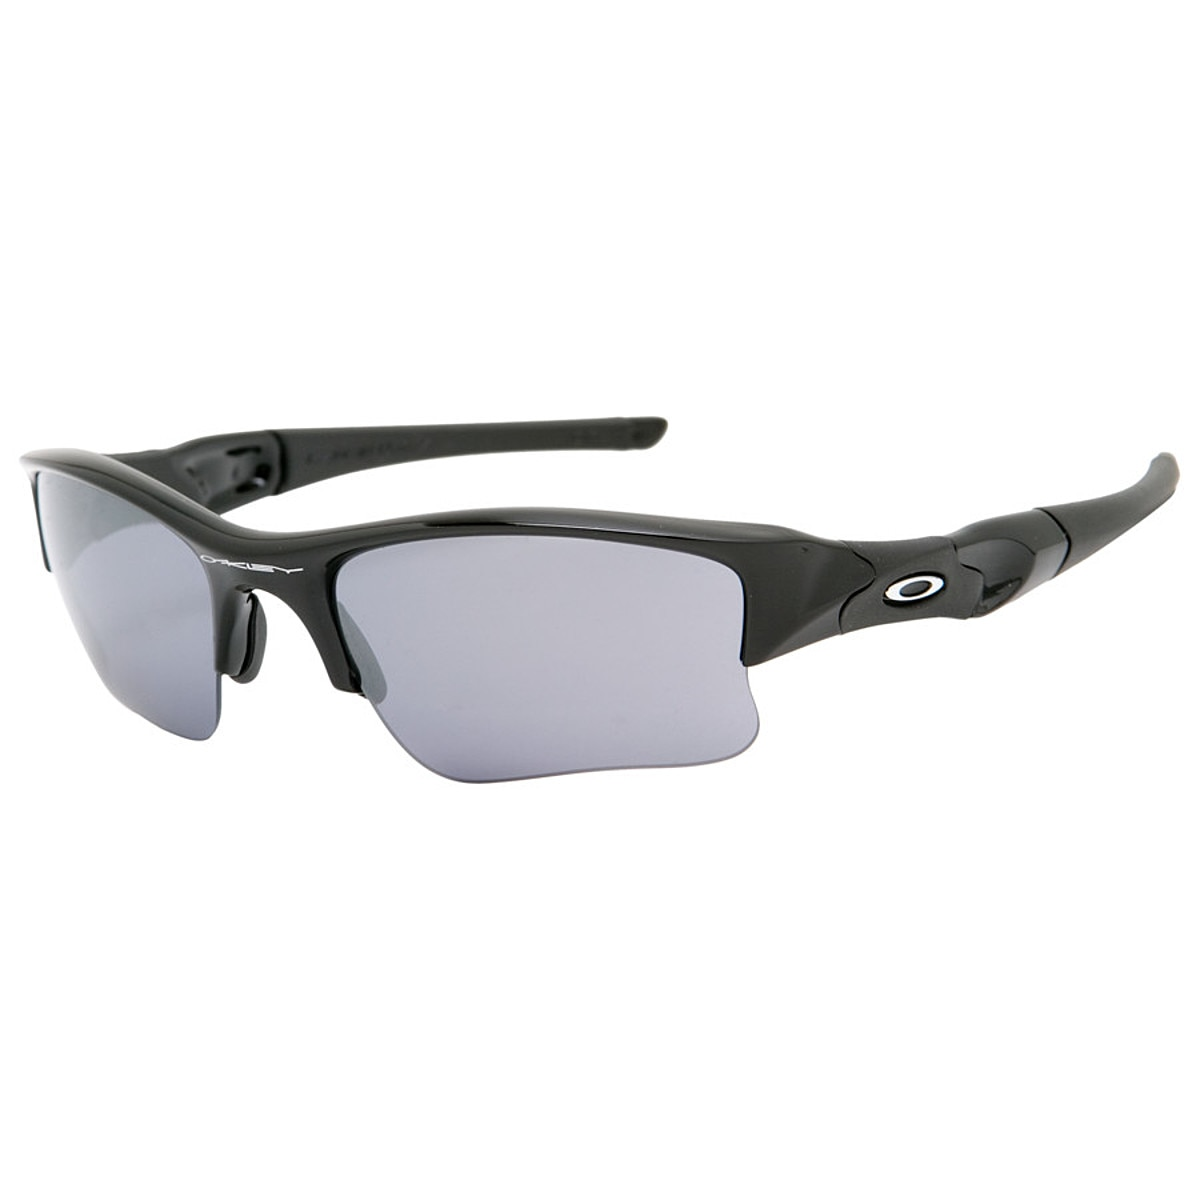 Flak Jacket Sunglasses  oakley flak jacket xlj sunglasses compeive cyclist